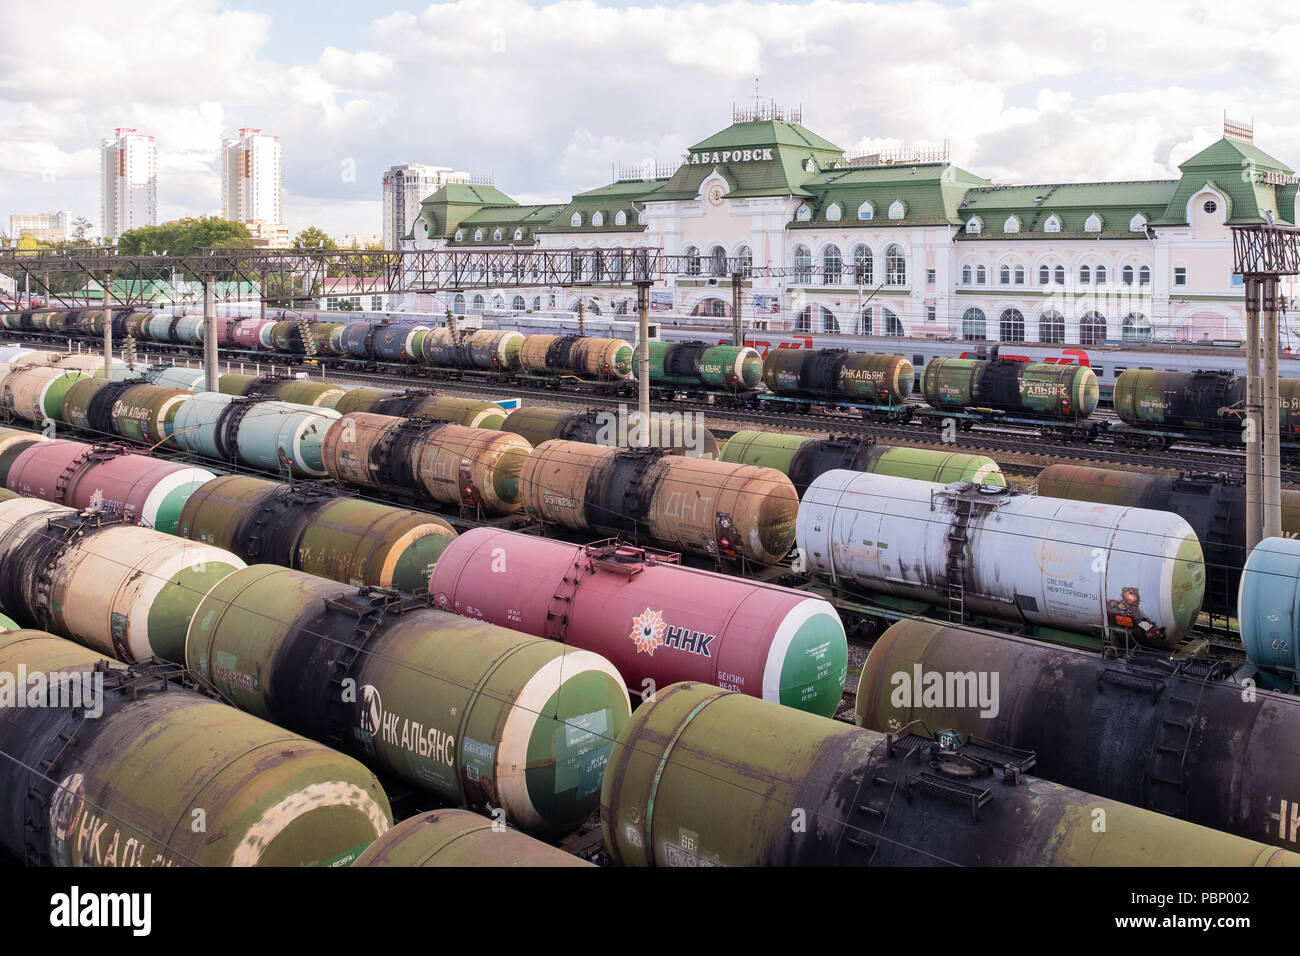 Khabarovsk, Russia - September 1th, 2017: A railway track with the oil tanks and passenger structure standing on it. - Stock Image